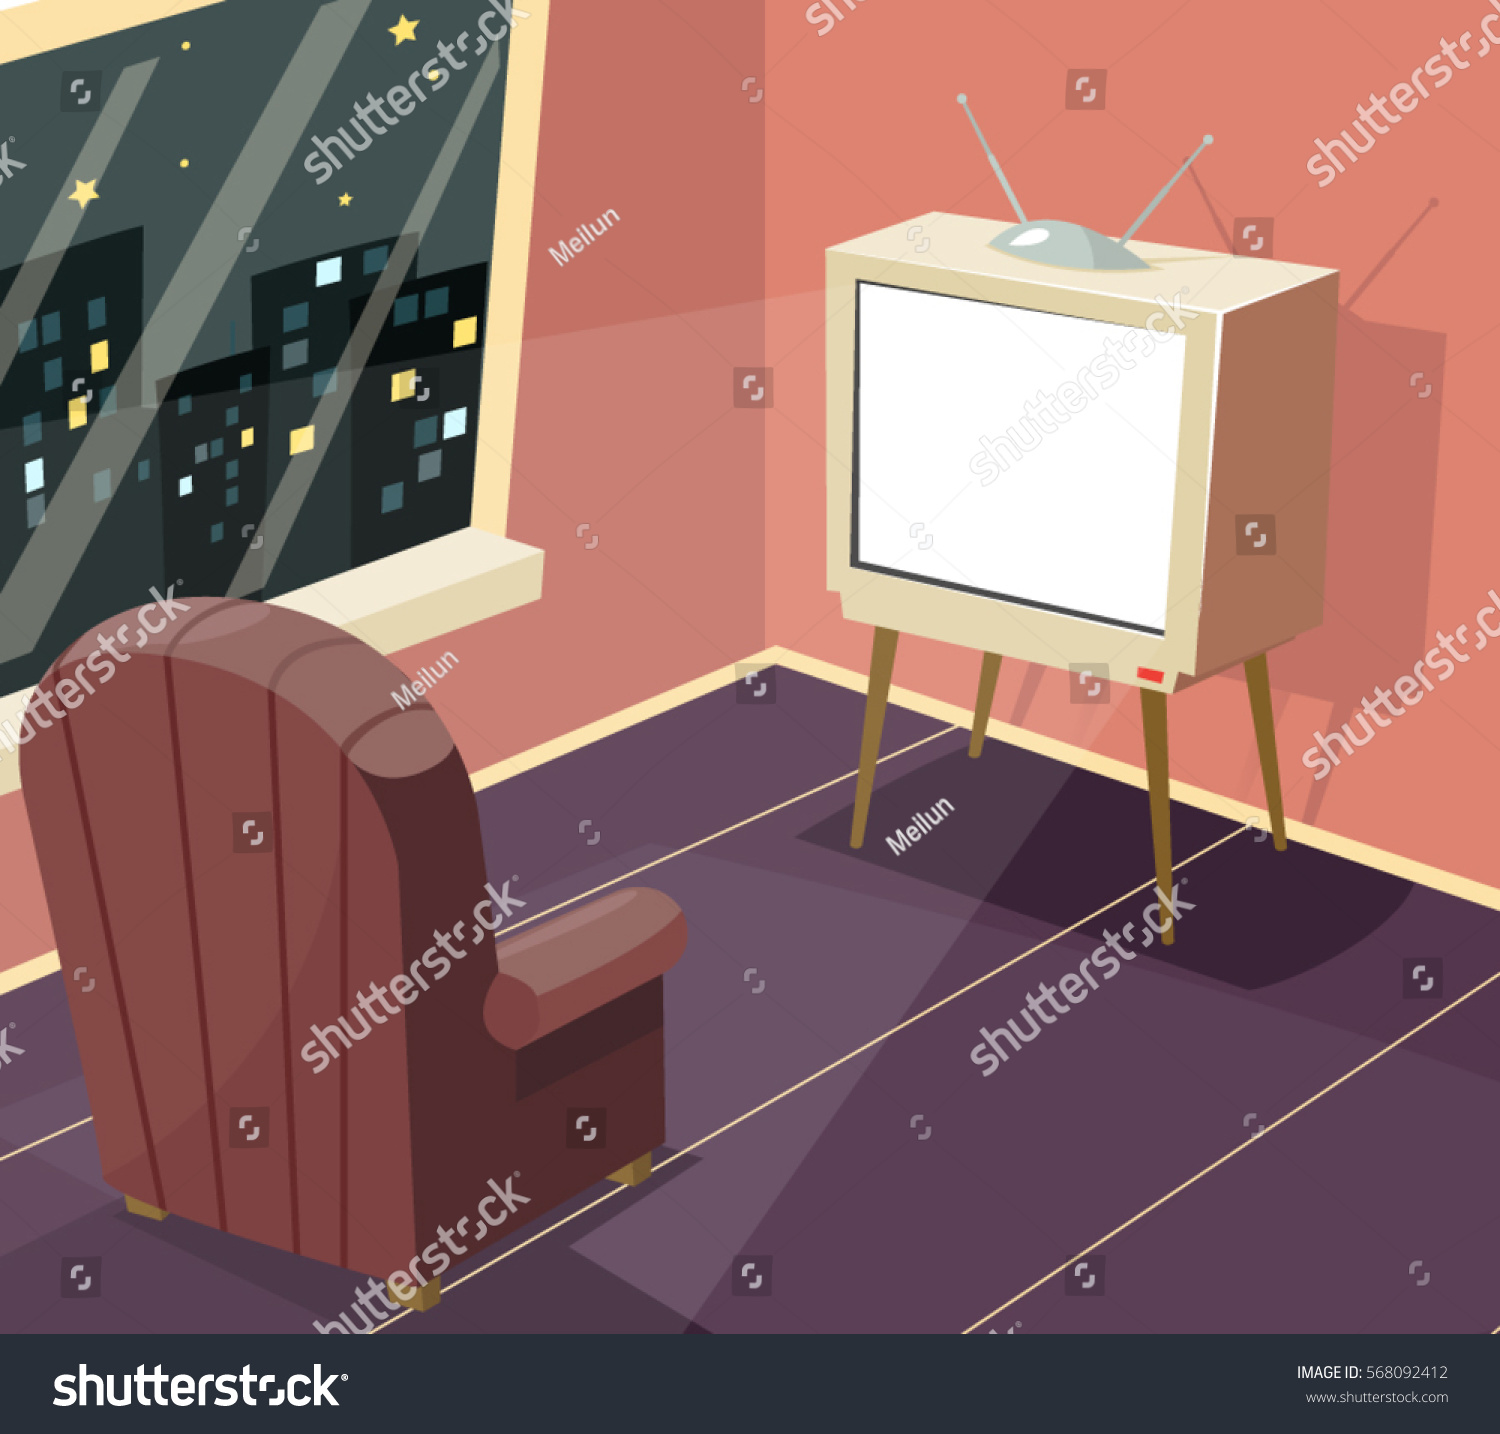 Cartoon kitchen with cabinets and window vector art illustration - Armchair In Front Of Tv Icon On Room Window Night City Background Cartoon Design Vector Illustration